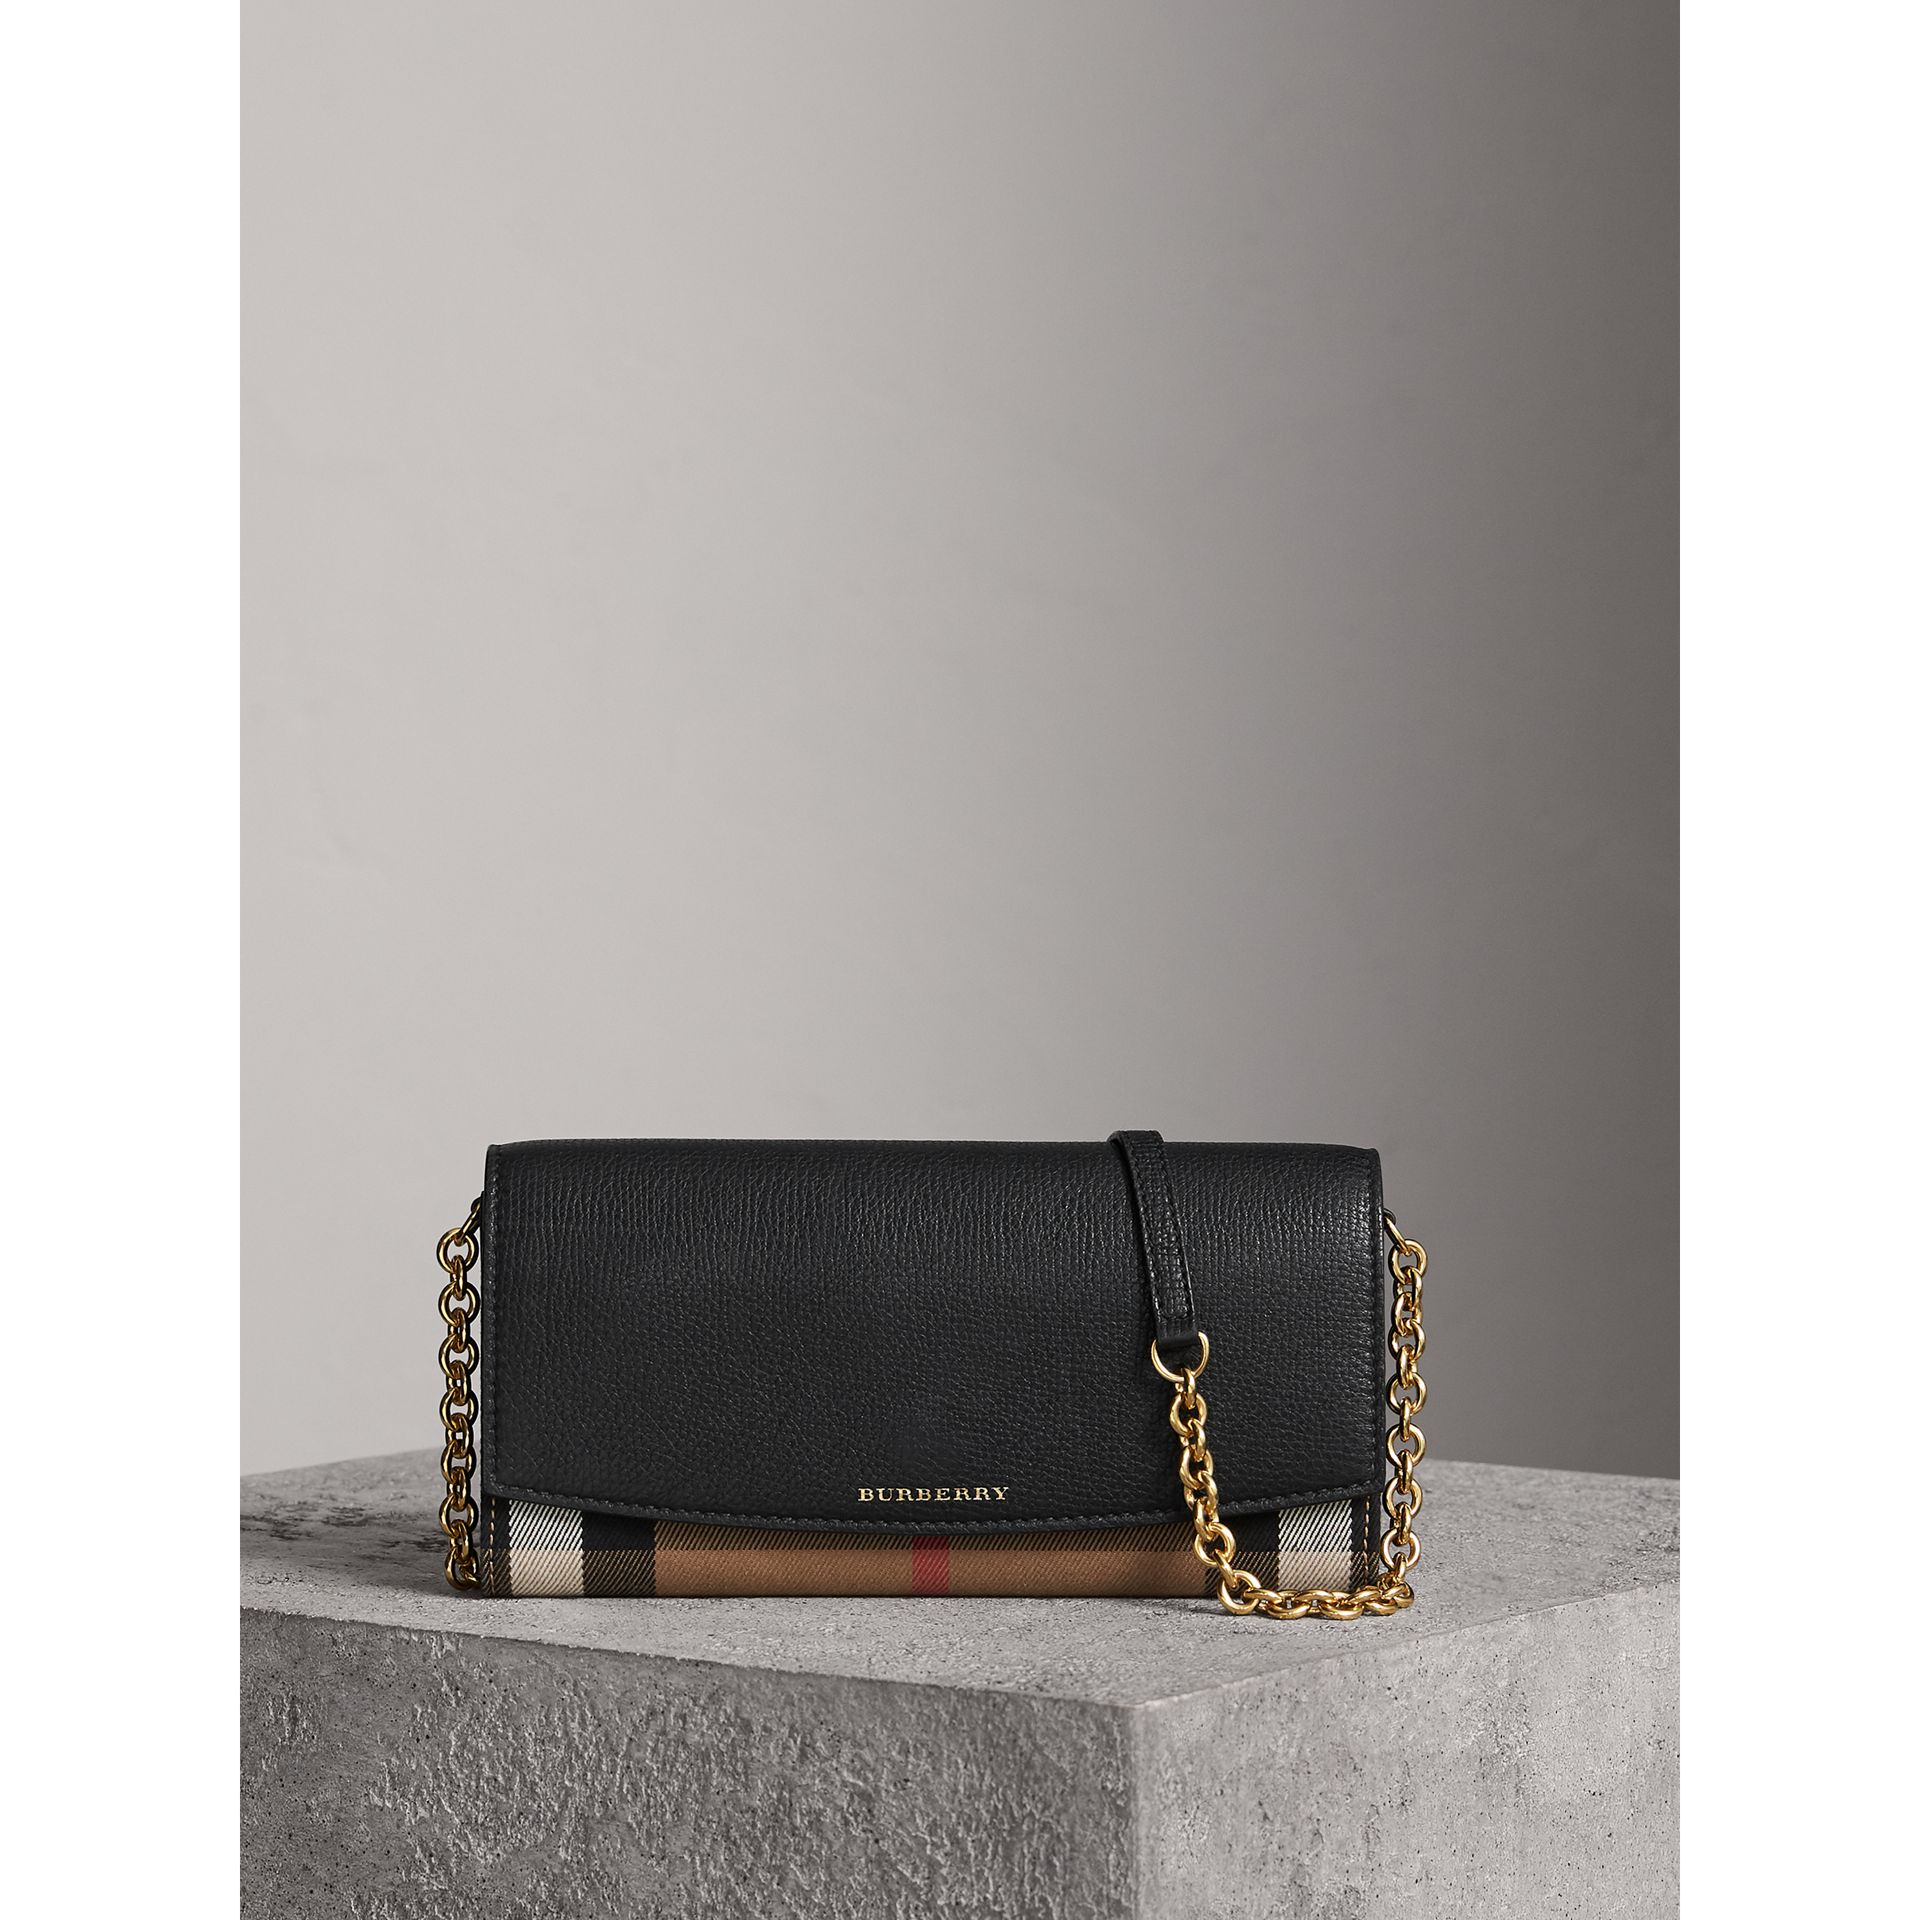 House Check and Leather Wallet with Chain in Black - Women | Burberry - gallery image 6